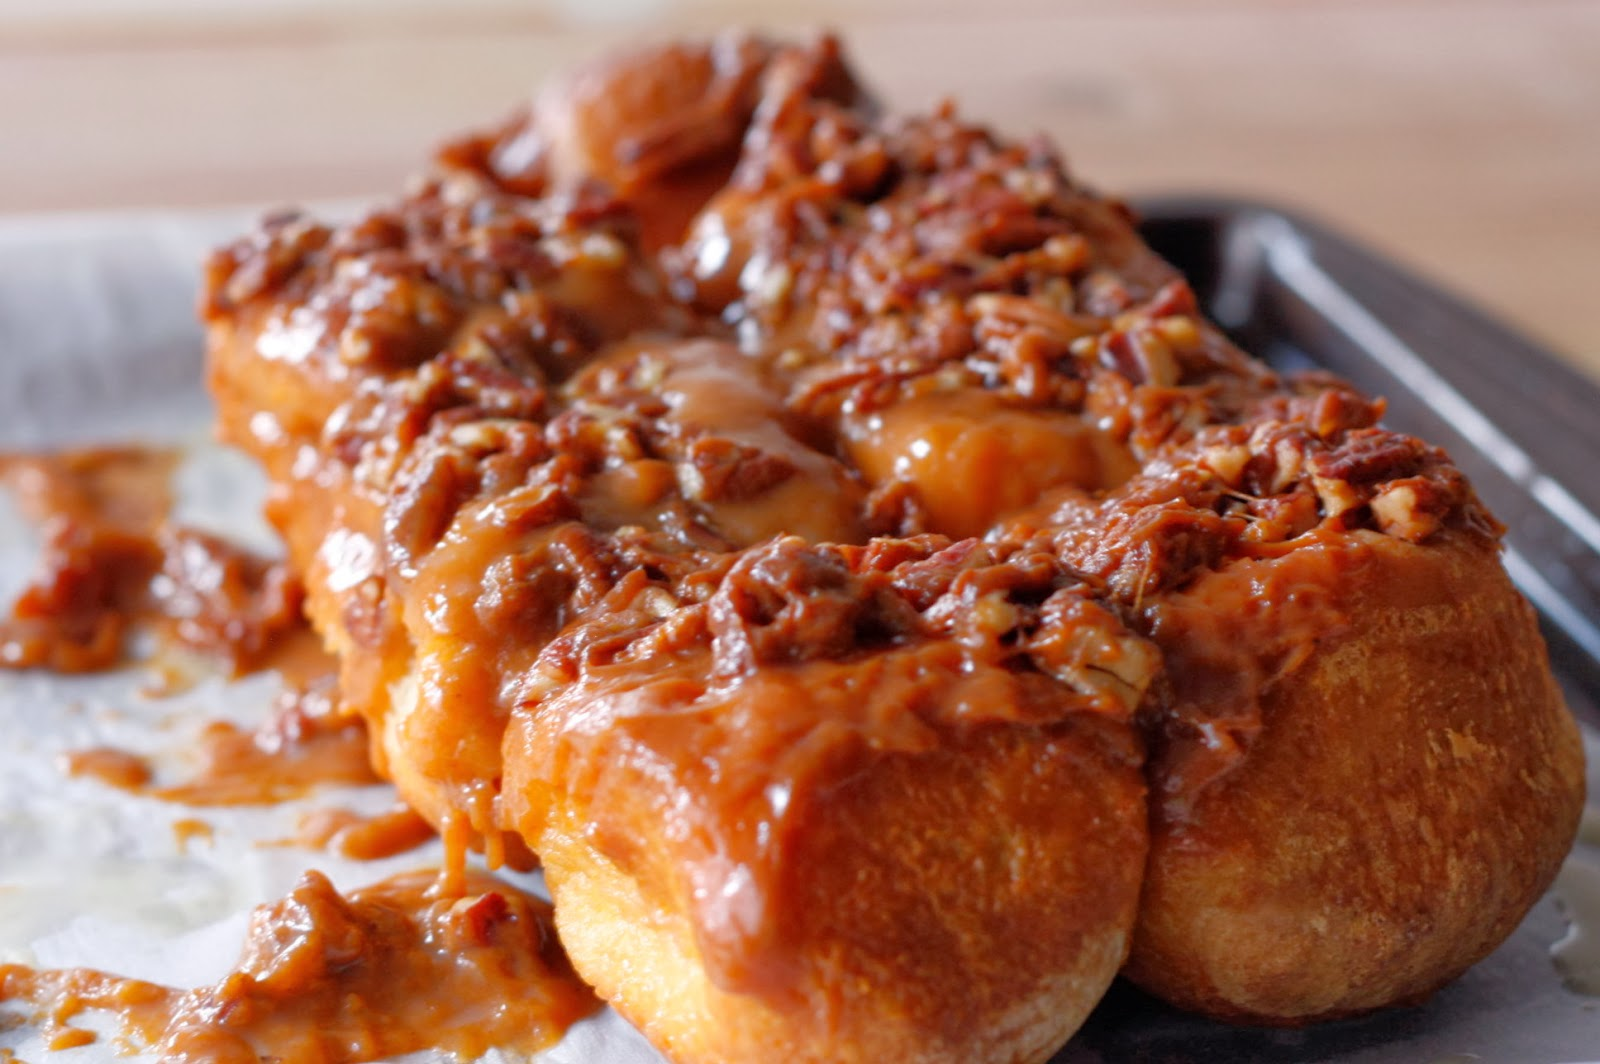 Boston Girl Bakes: Easy Overnight Caramel Pecan Rolls